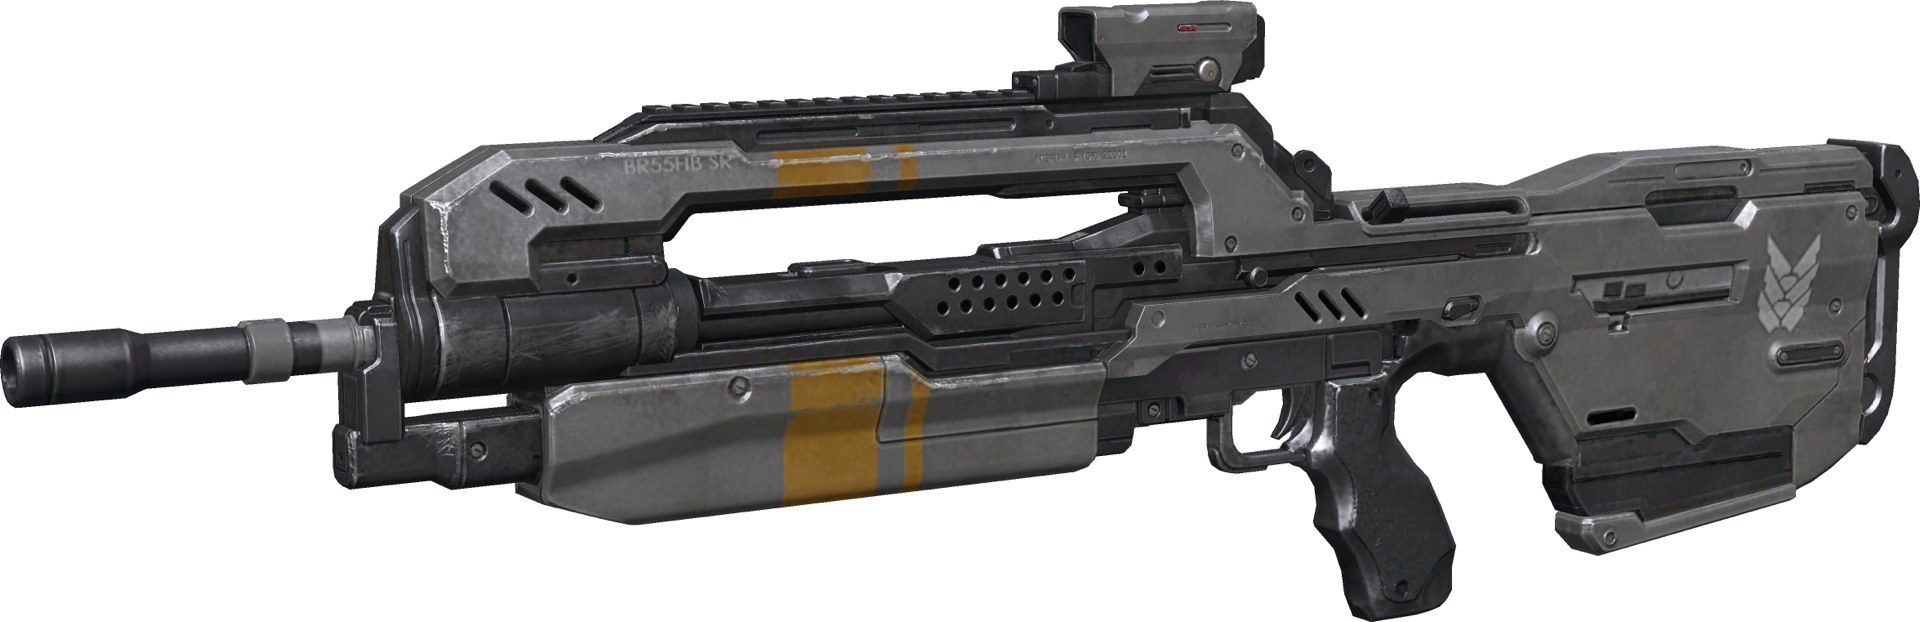 Halo 4 Battle fusil, carabine